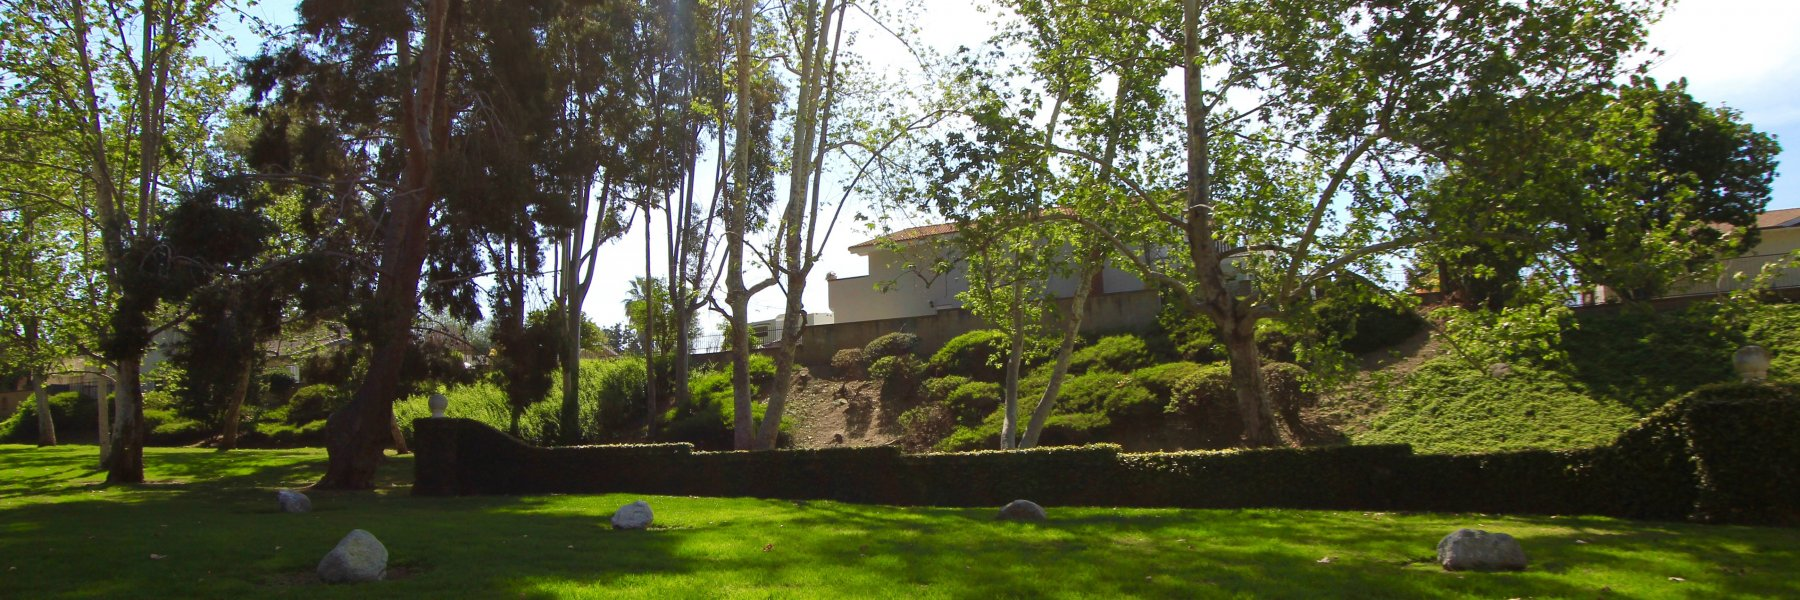 Granada is a community of homes in Mission Viejo California